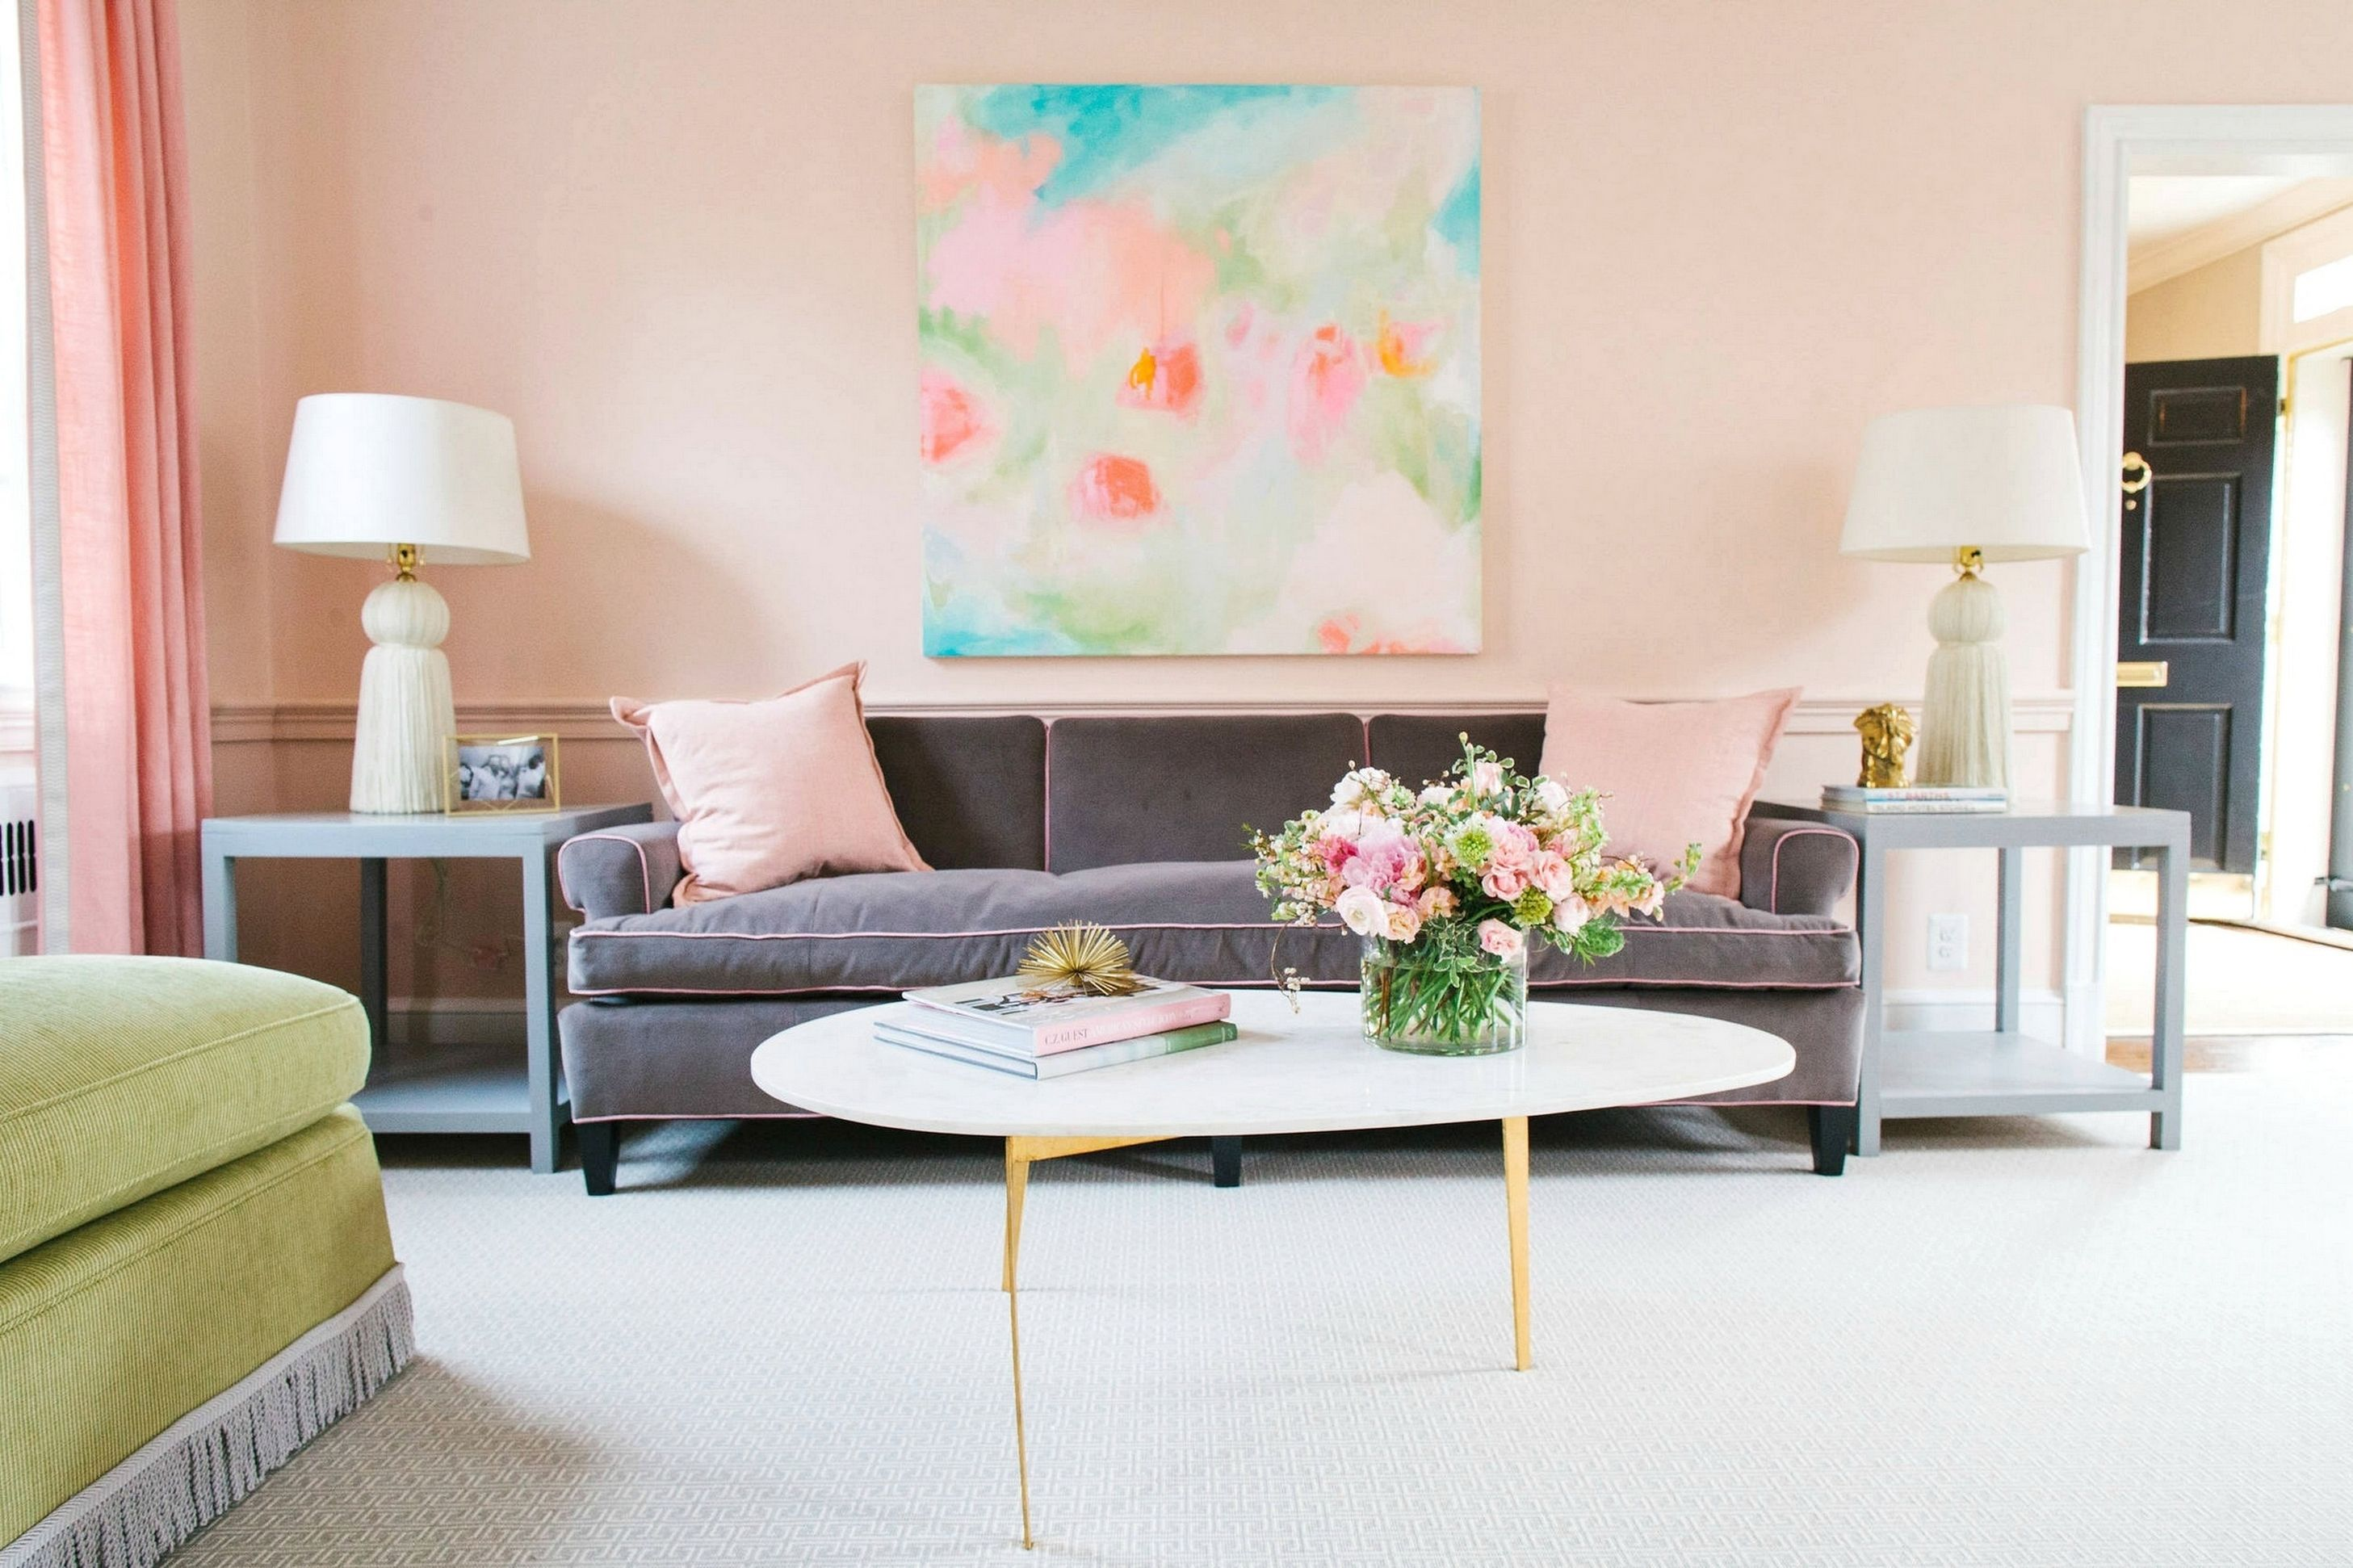 2017 Color Trends And Inspiration For Interior Design Modern And Minimalist Living Room Color Chic Living Room Design Pastel Home Decor